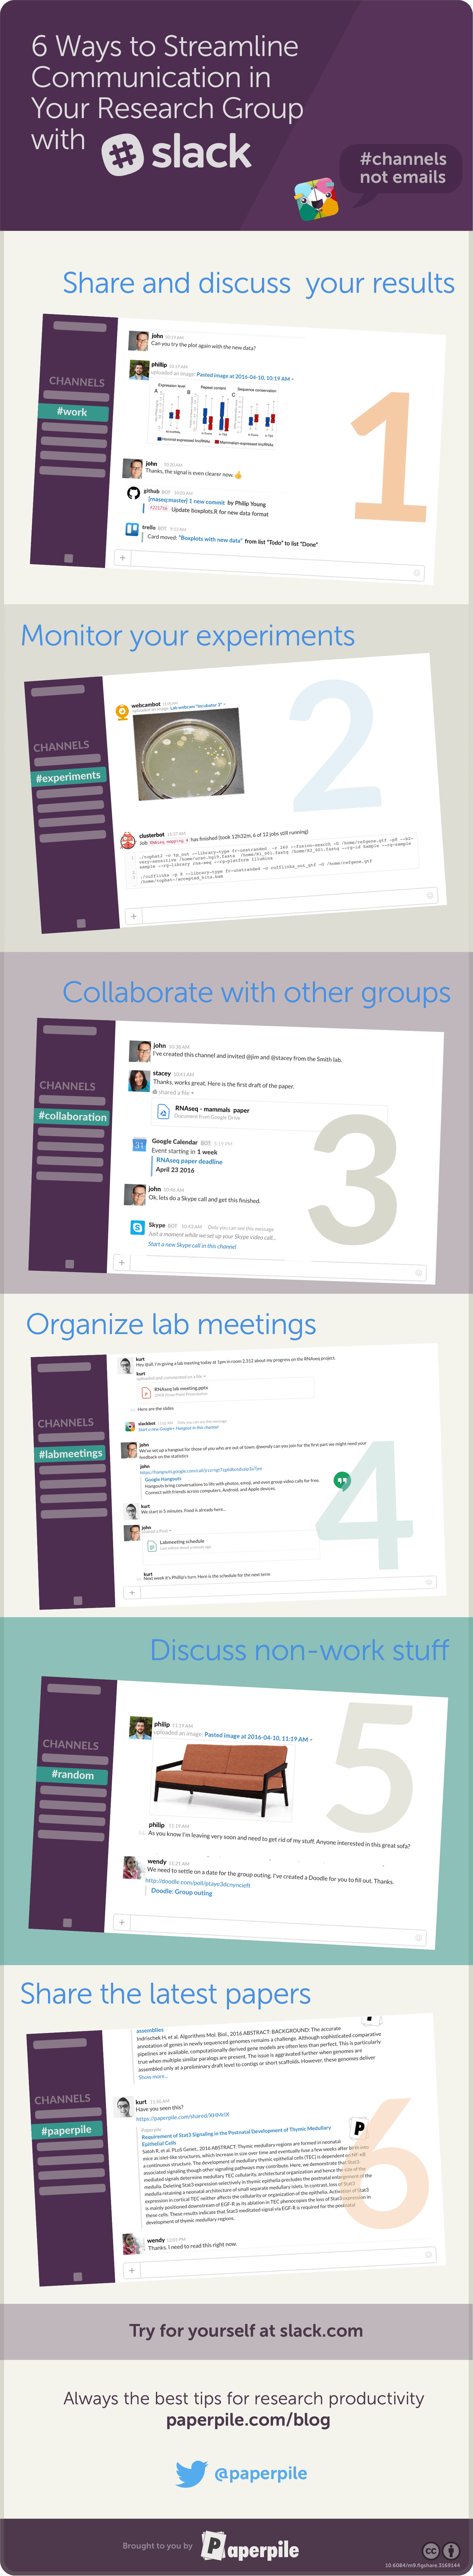 6 Ways to Streamline Communication in Your Research Group